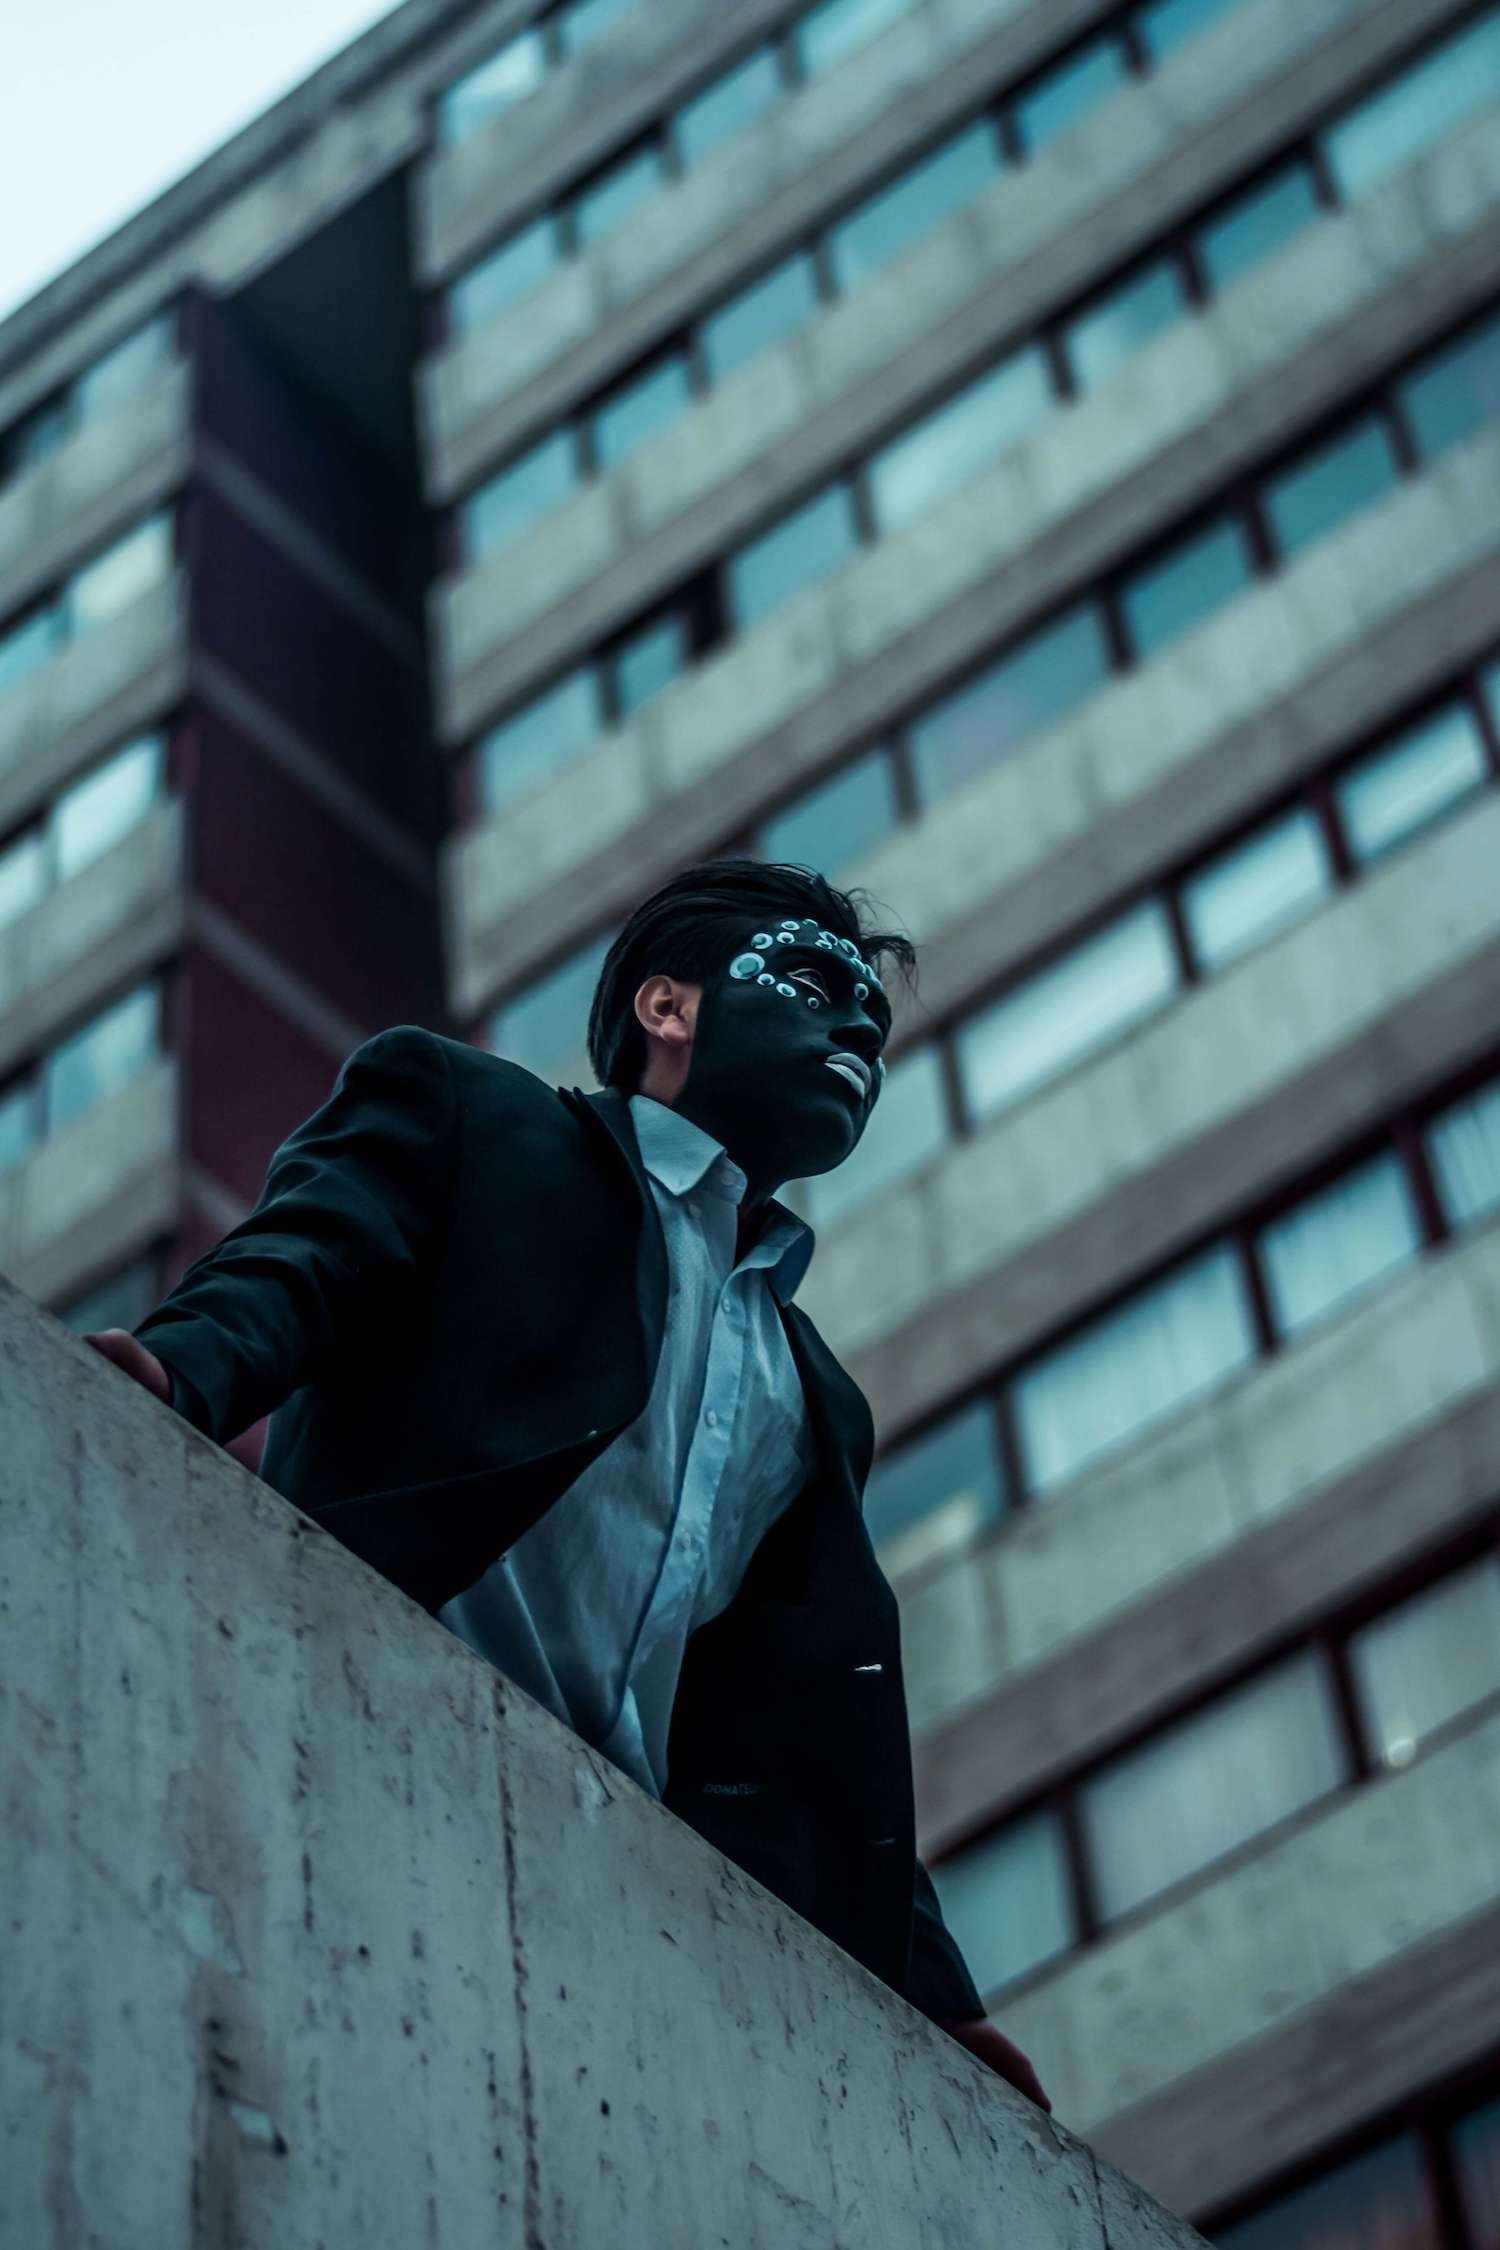 A man wearing a black decorative mask in an industrial area.